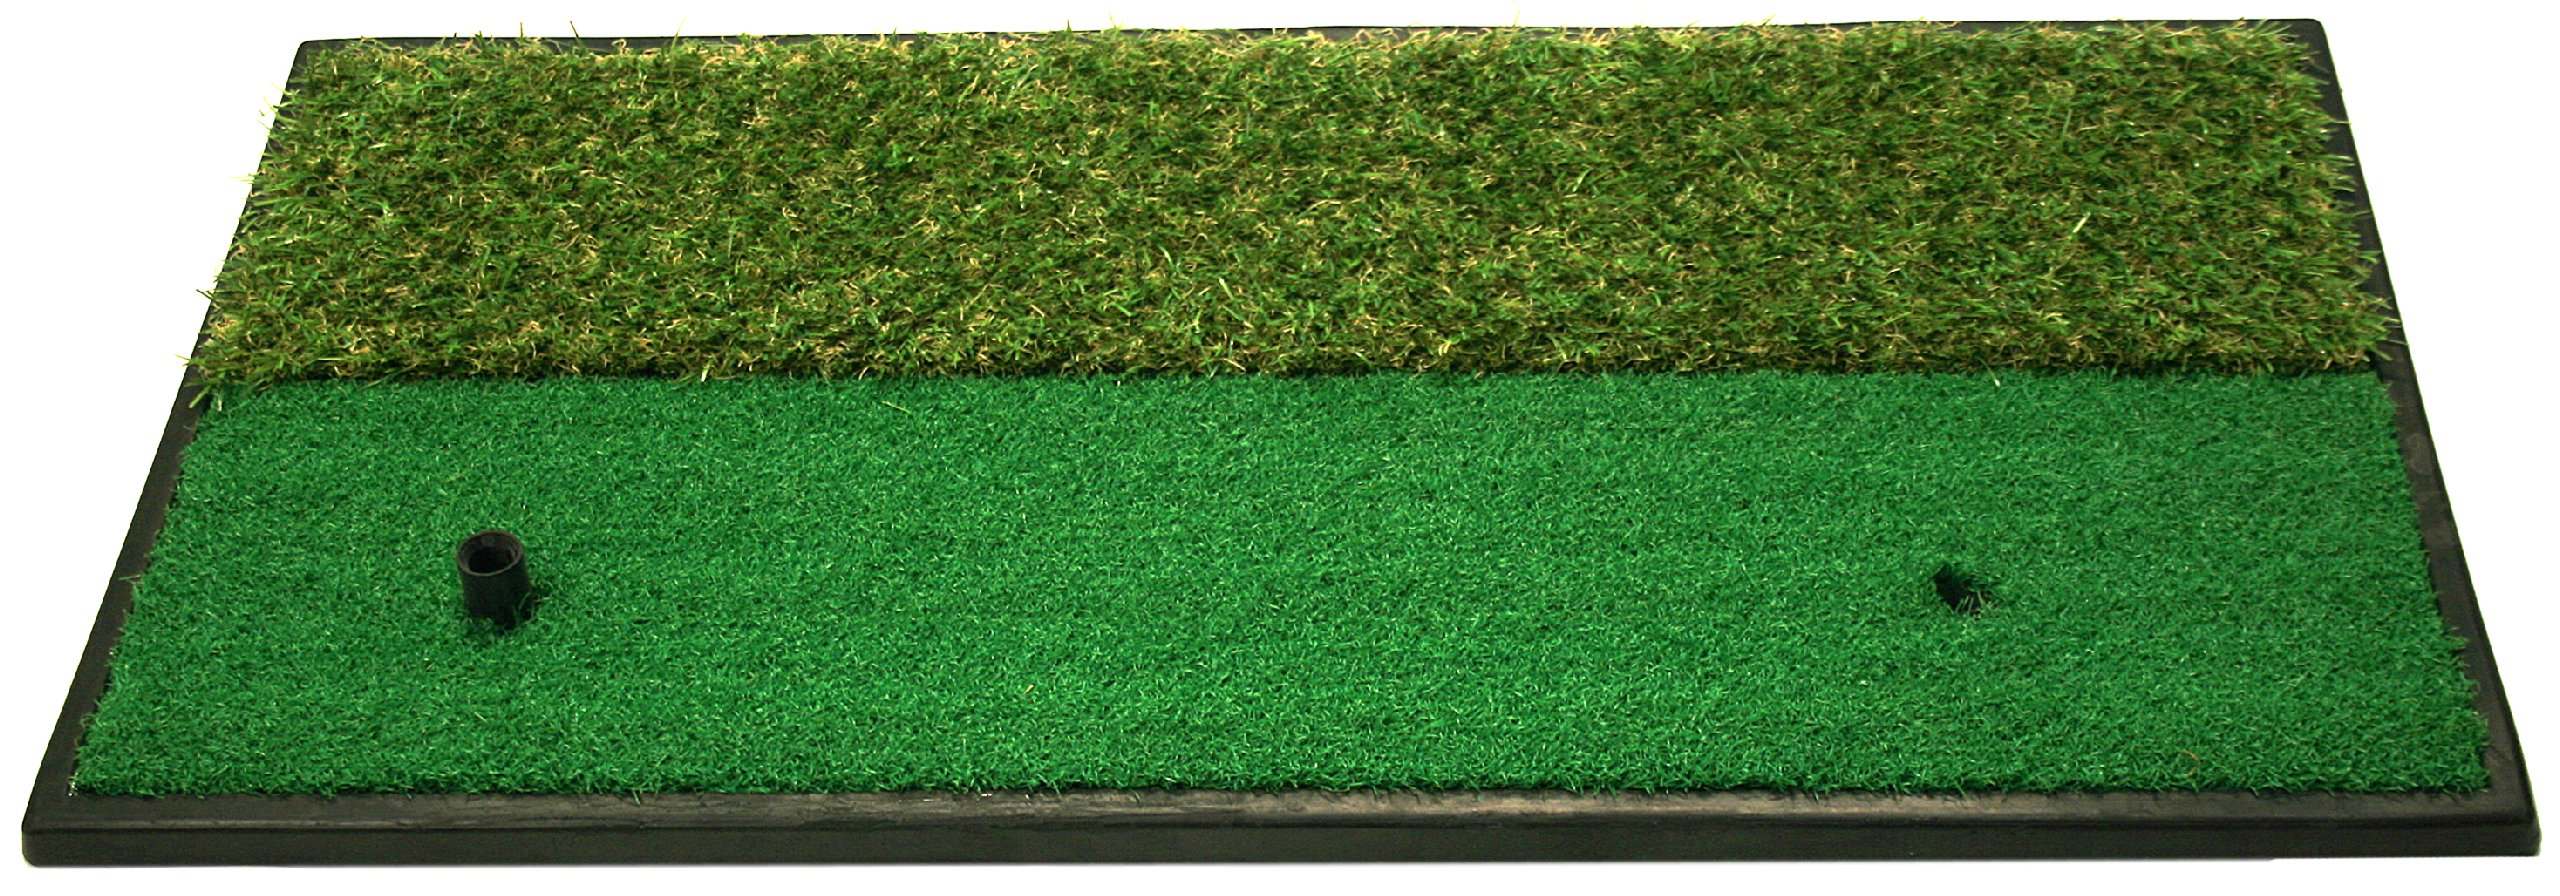 Dual-Surface Hitting/Practice, Chipping and Driving Golf Grass Mat with Fairway and Rough Surfaces by ProActive Sports